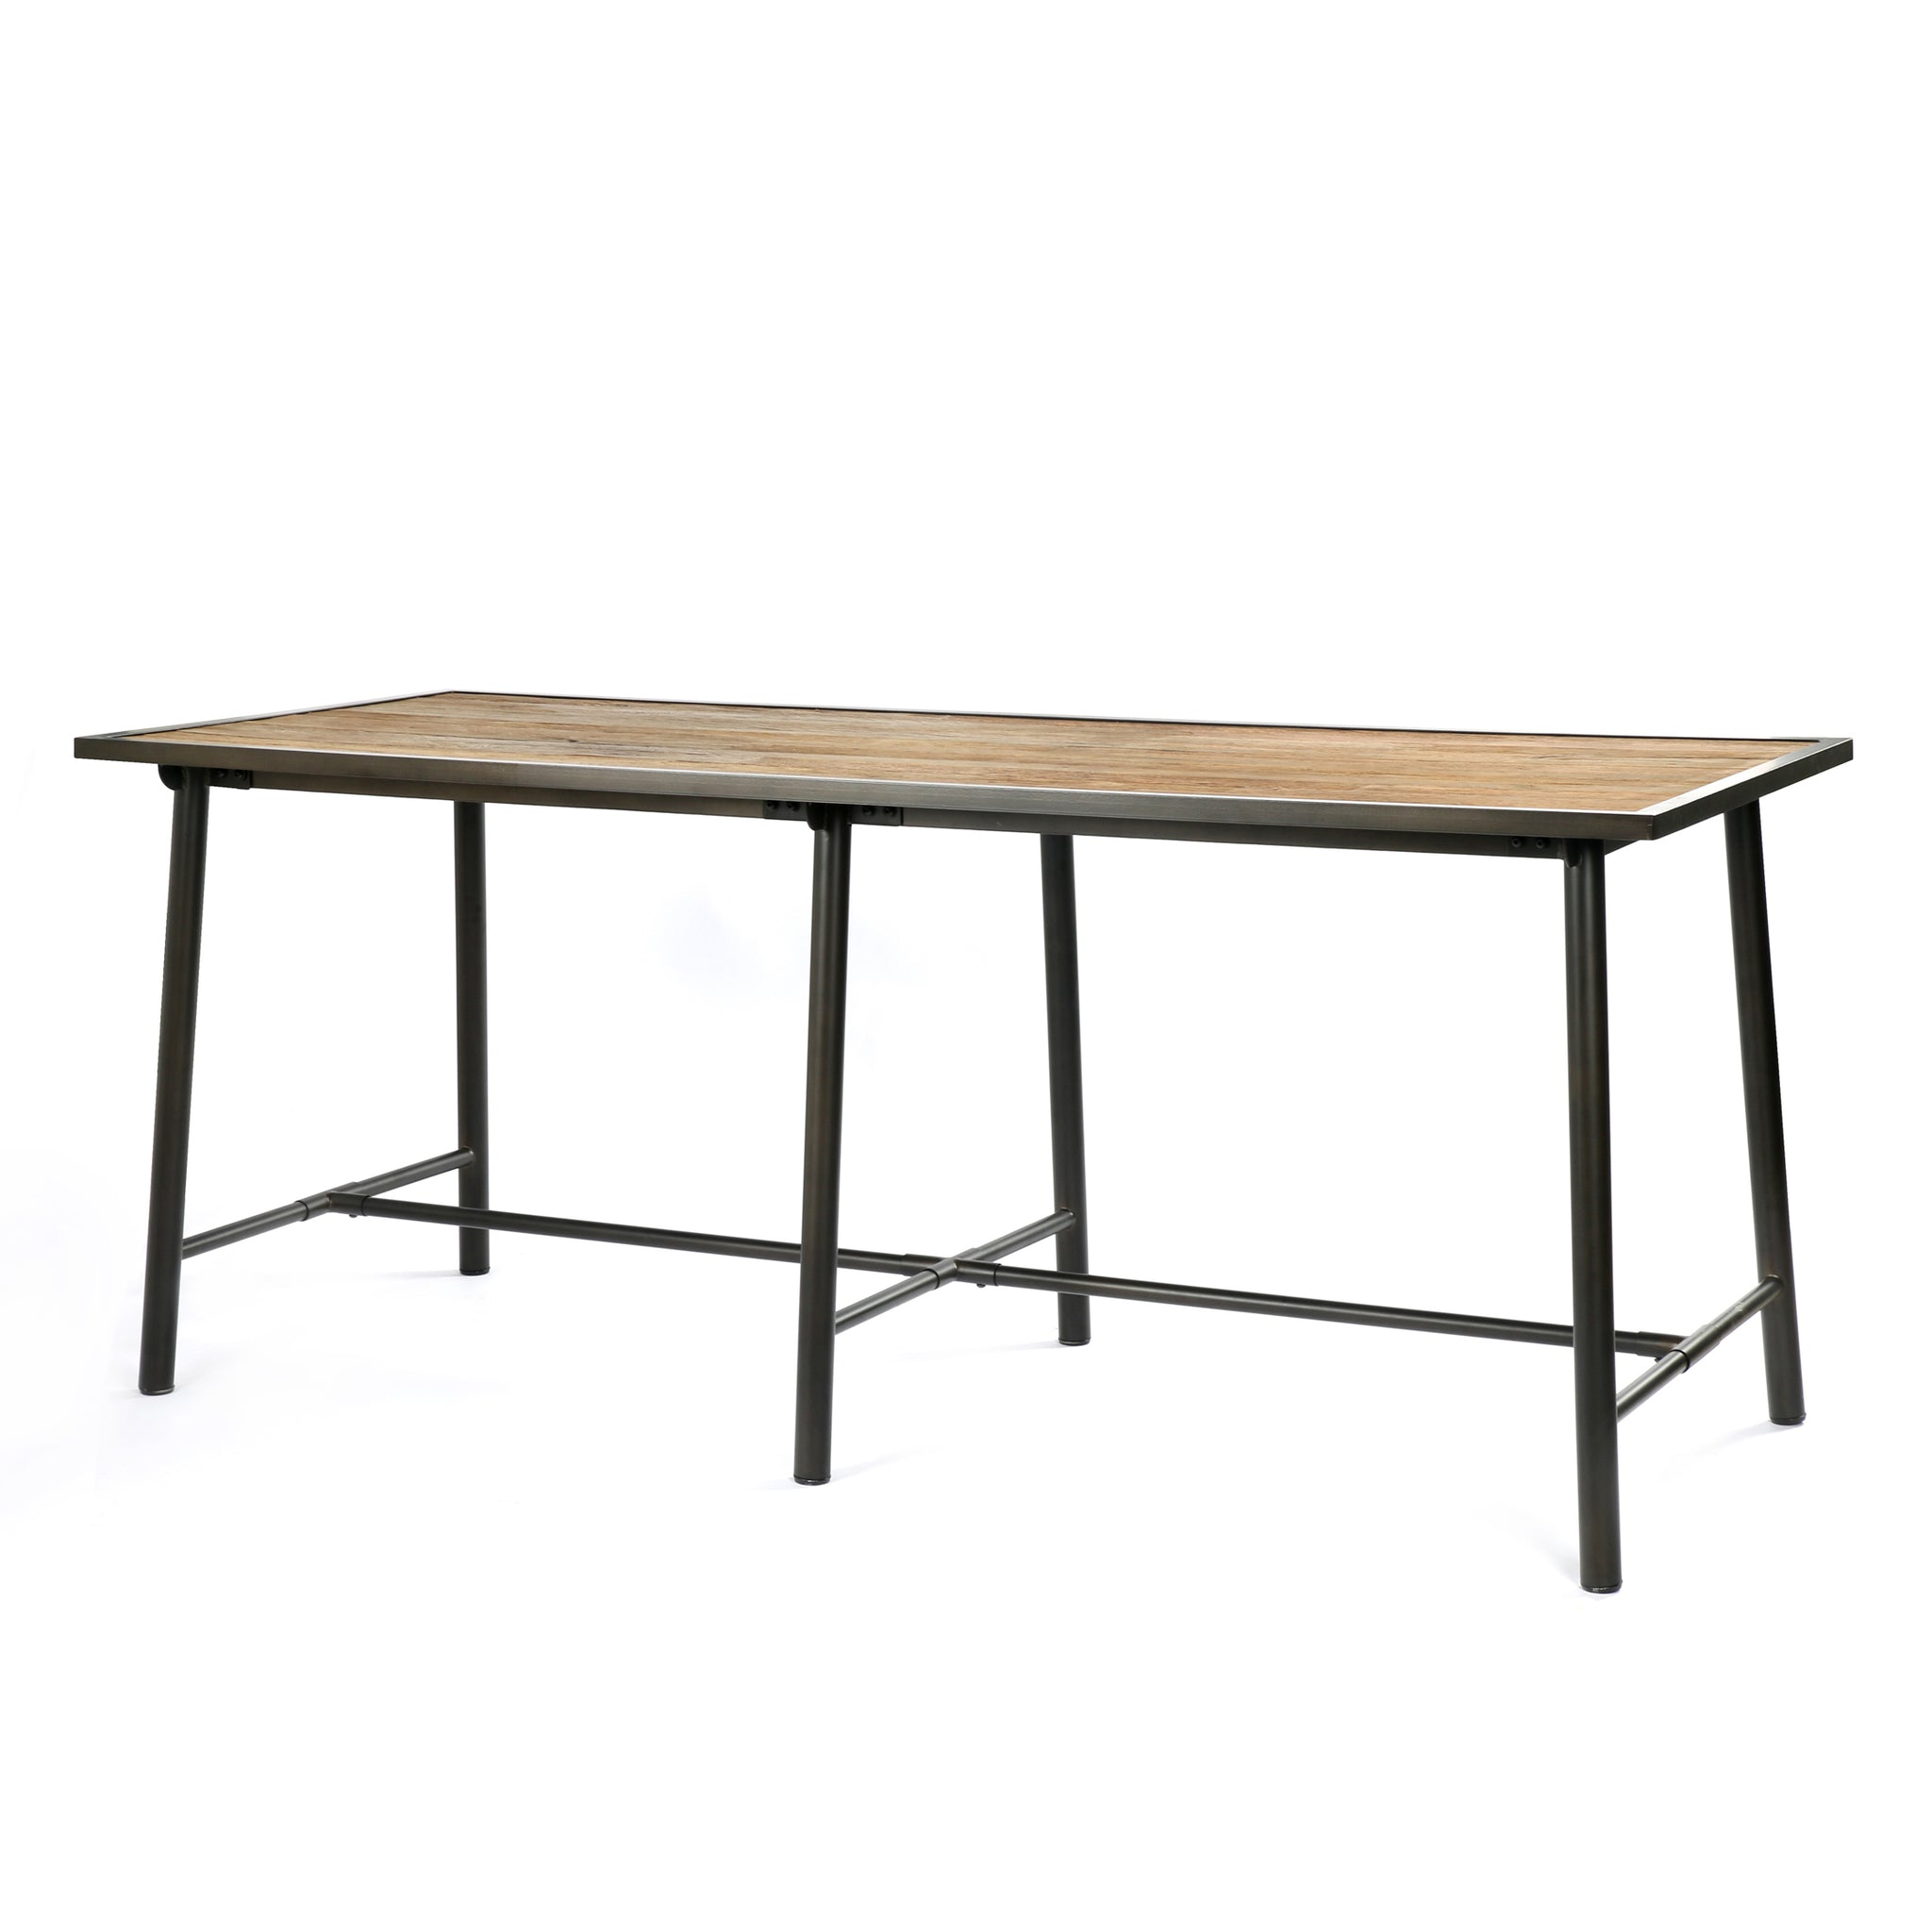 Bar Height Iron & Wood Dining Table - Furniture on Main